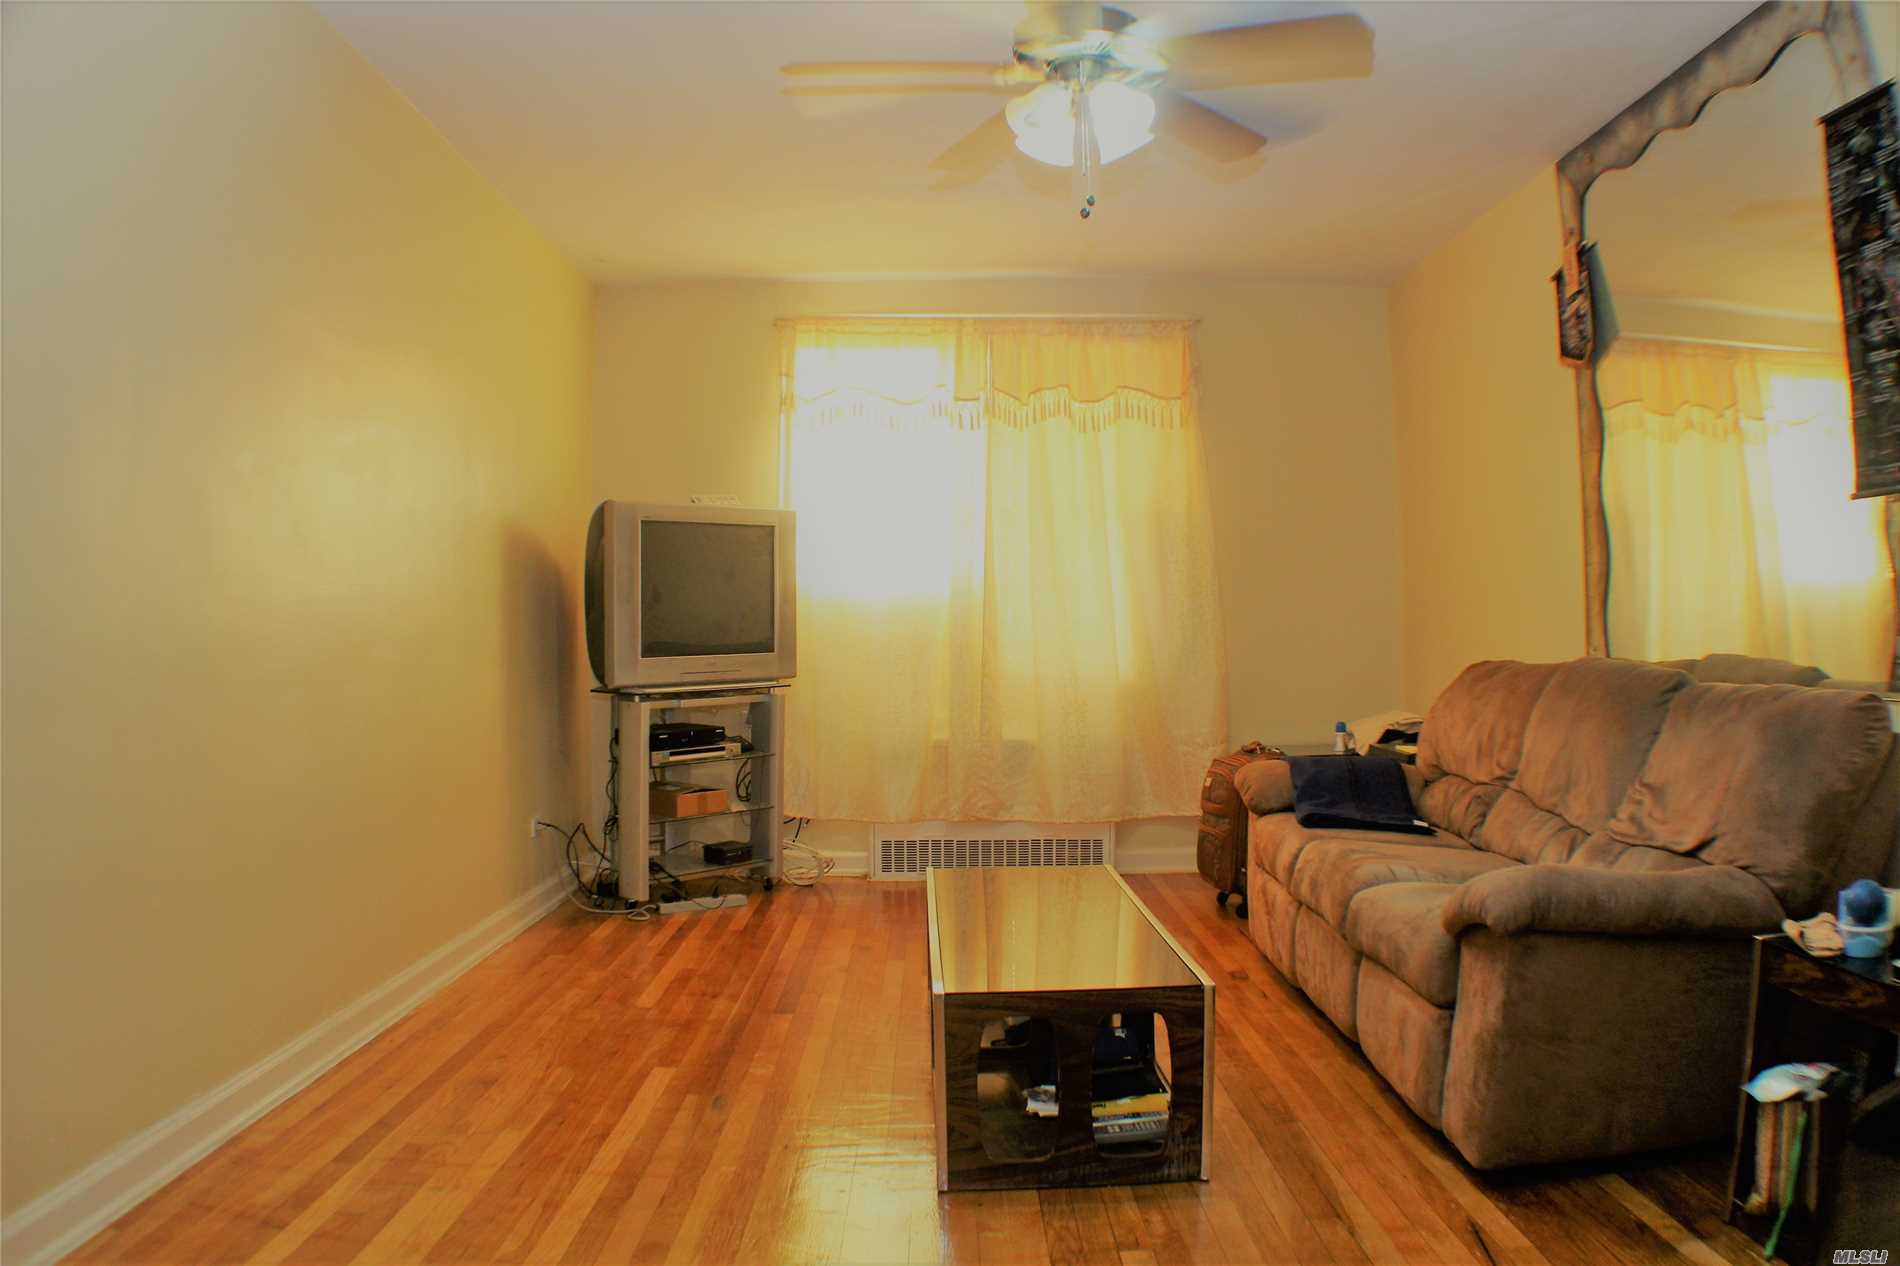 Large Living Room With Beautiful Hardwood Floor, Eat In Kitchen With Large Bedroom.  Area Security Guard Post And Also Has A Visual Intercom System That Allows Visitors To Be Seen And Spoken To Before Gaining Entry. Lenox Arms, A First Class Co Op In The Heart Of Brooklyn. Fantastic Opportunity To Own. 24 Hr Security Guard, Throughout. Laundry Room On Premises. Walking Distance To Area Shopping, Hospitals (Kings County, Downstate Univ.) And Close To The Park. No Pets, No Subletting.